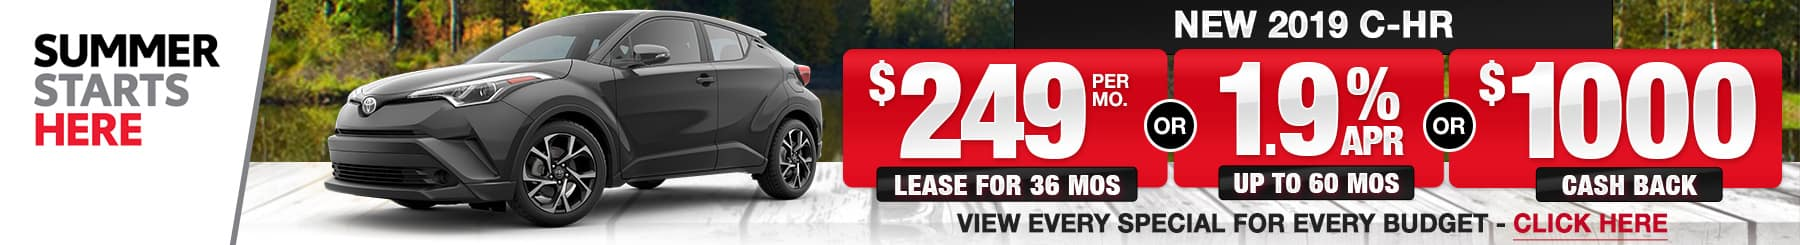 Toyota C-HR Lease Finance Specials